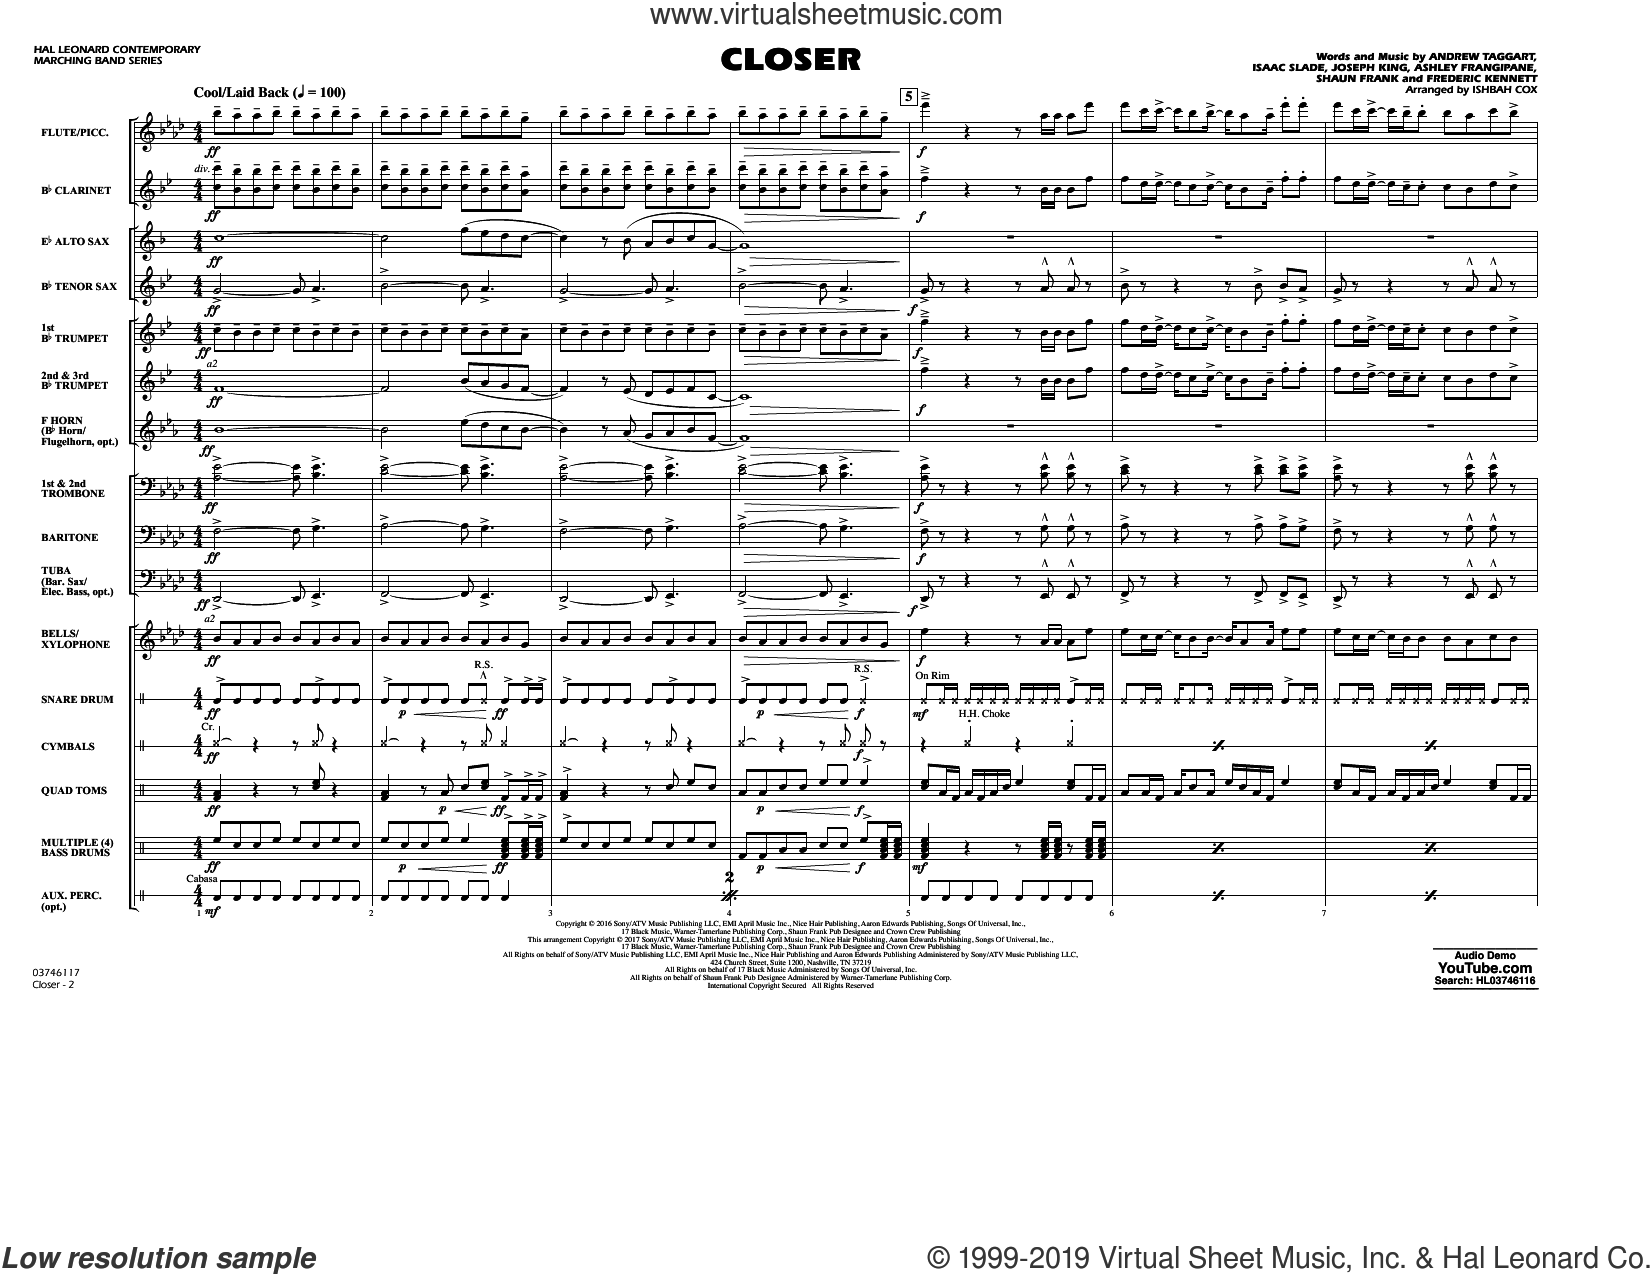 Closer (COMPLETE) sheet music for marching band by Ishbah Cox, Andrew Taggart, Ashley Frangipane, Frederic Kennett, Halsey, Isaac Slade, Joseph King, Shaun Frank and The Chainsmokers featuring Halsey, intermediate skill level